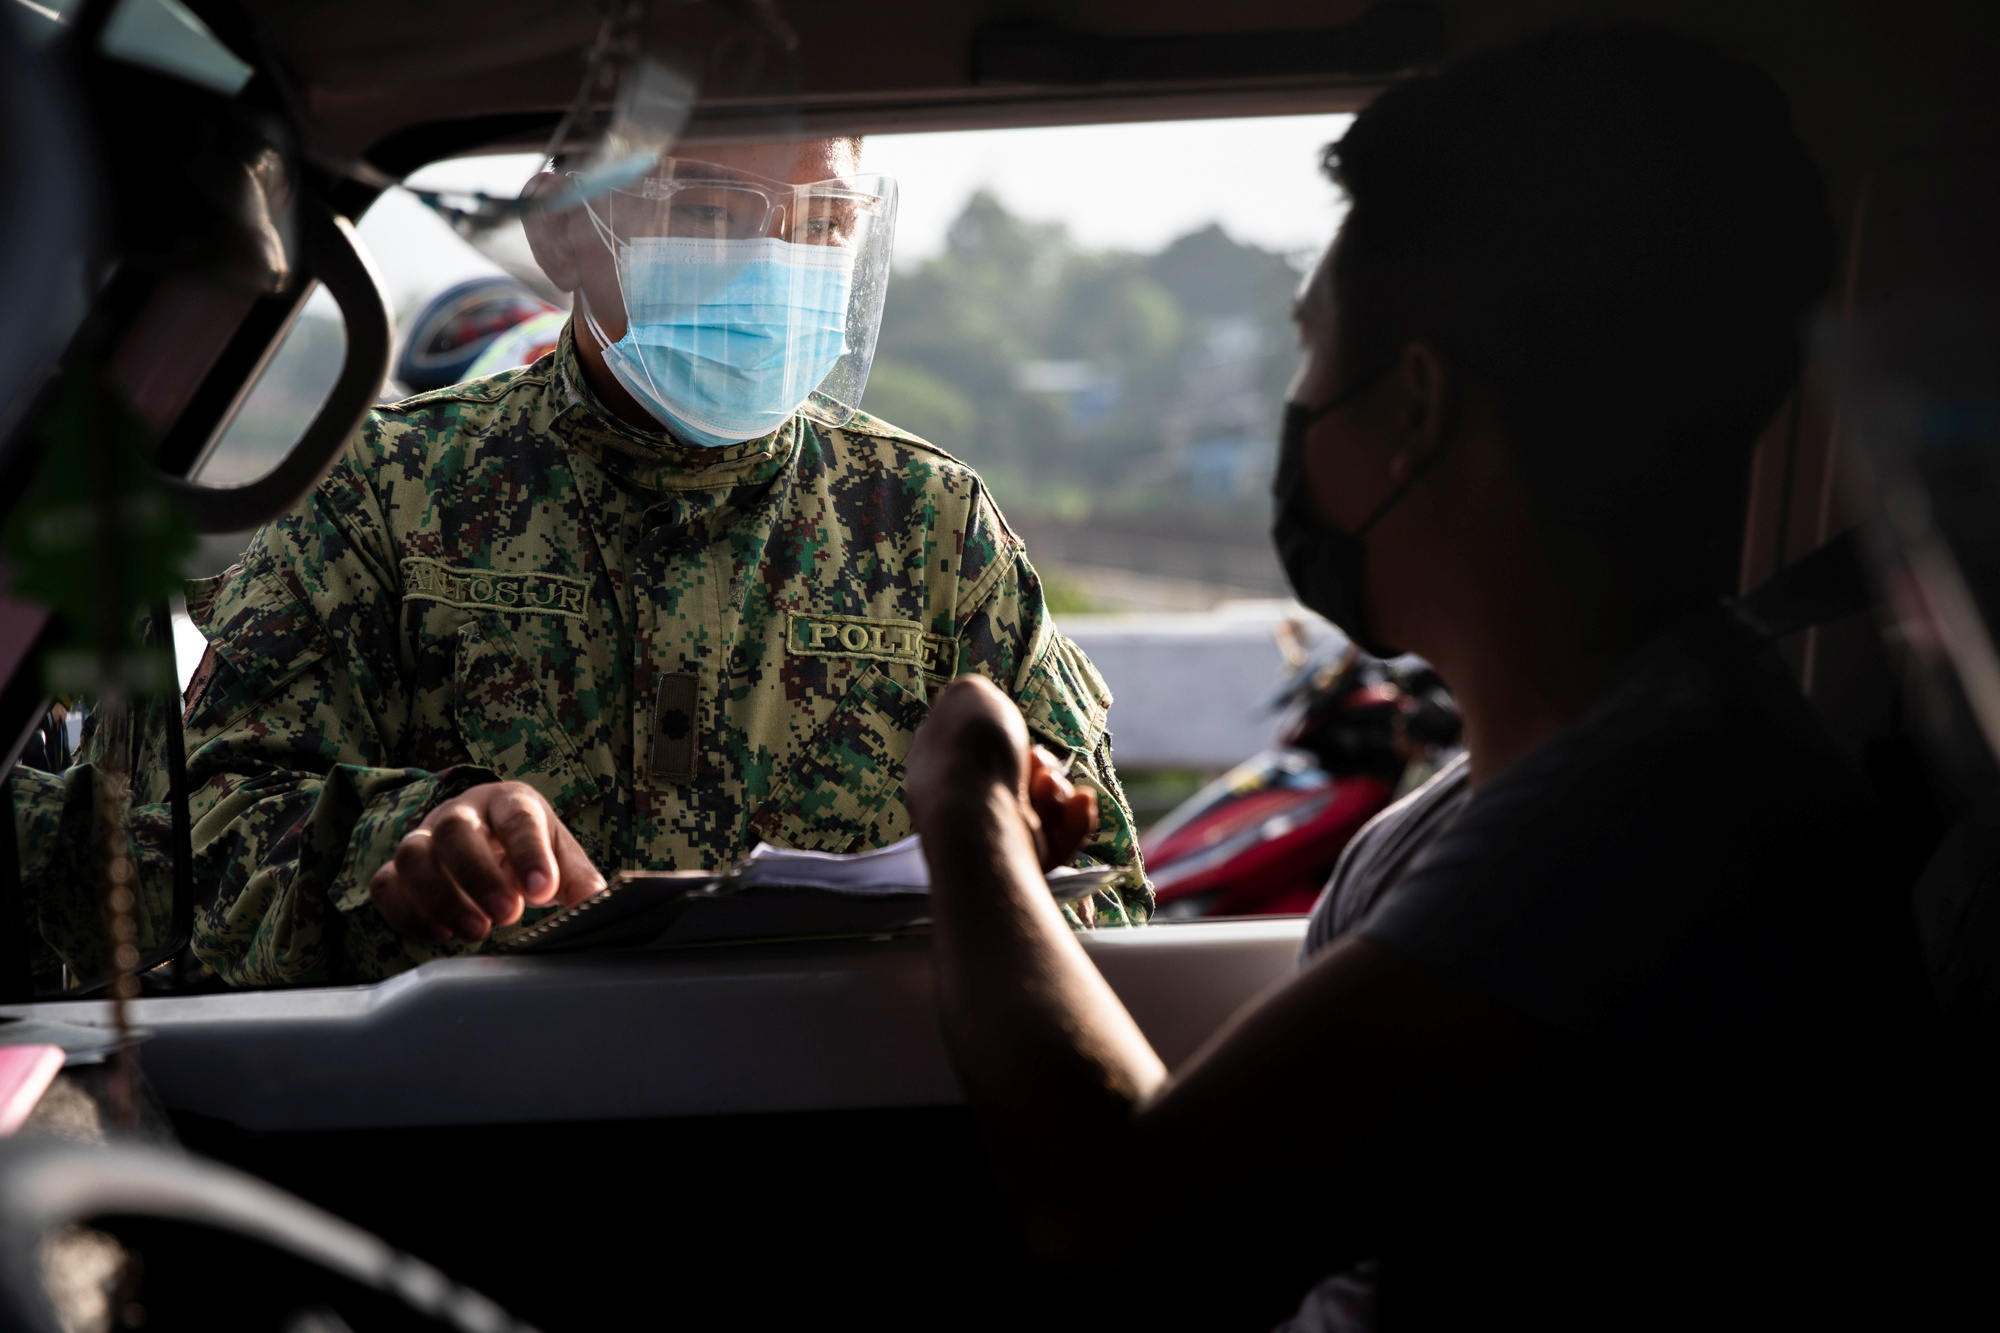 A policeman inspects the papers of a passenger passing through a checkpoint on the first day of a two-week lockdown to prevent the spread of the highly infectious coronavirus Delta variant, in Quezon City, Metro Manila, Philippines, August 6, 2021. REUTERS/Eloisa Lopez